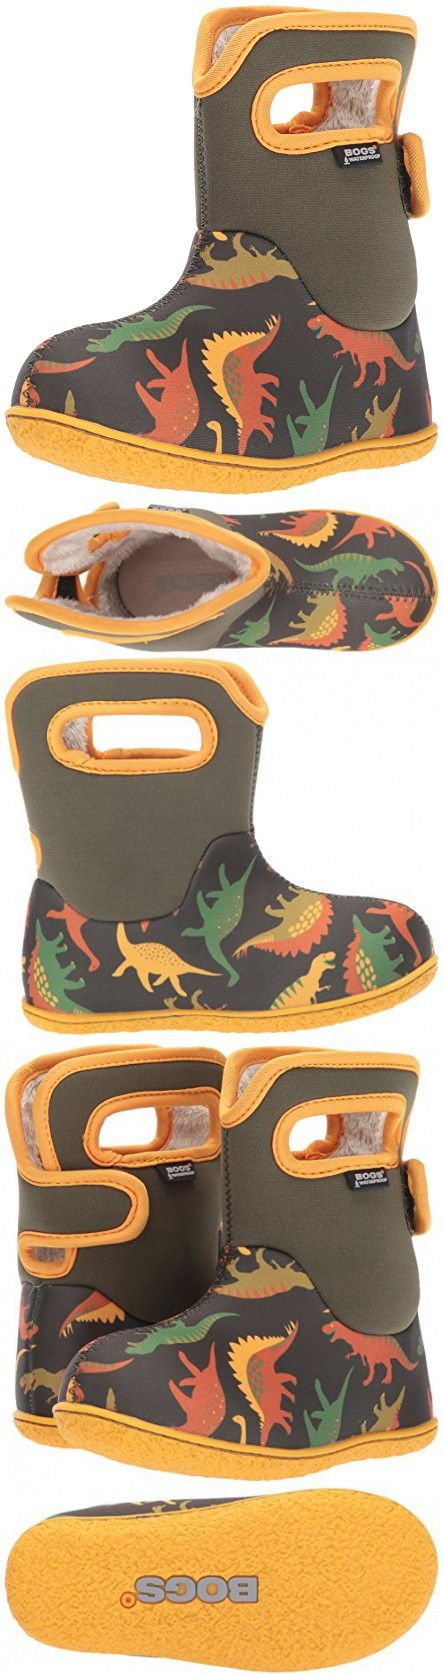 Bogs Baby Dino Snow Boot, Moss Multi, 7 M US Toddler